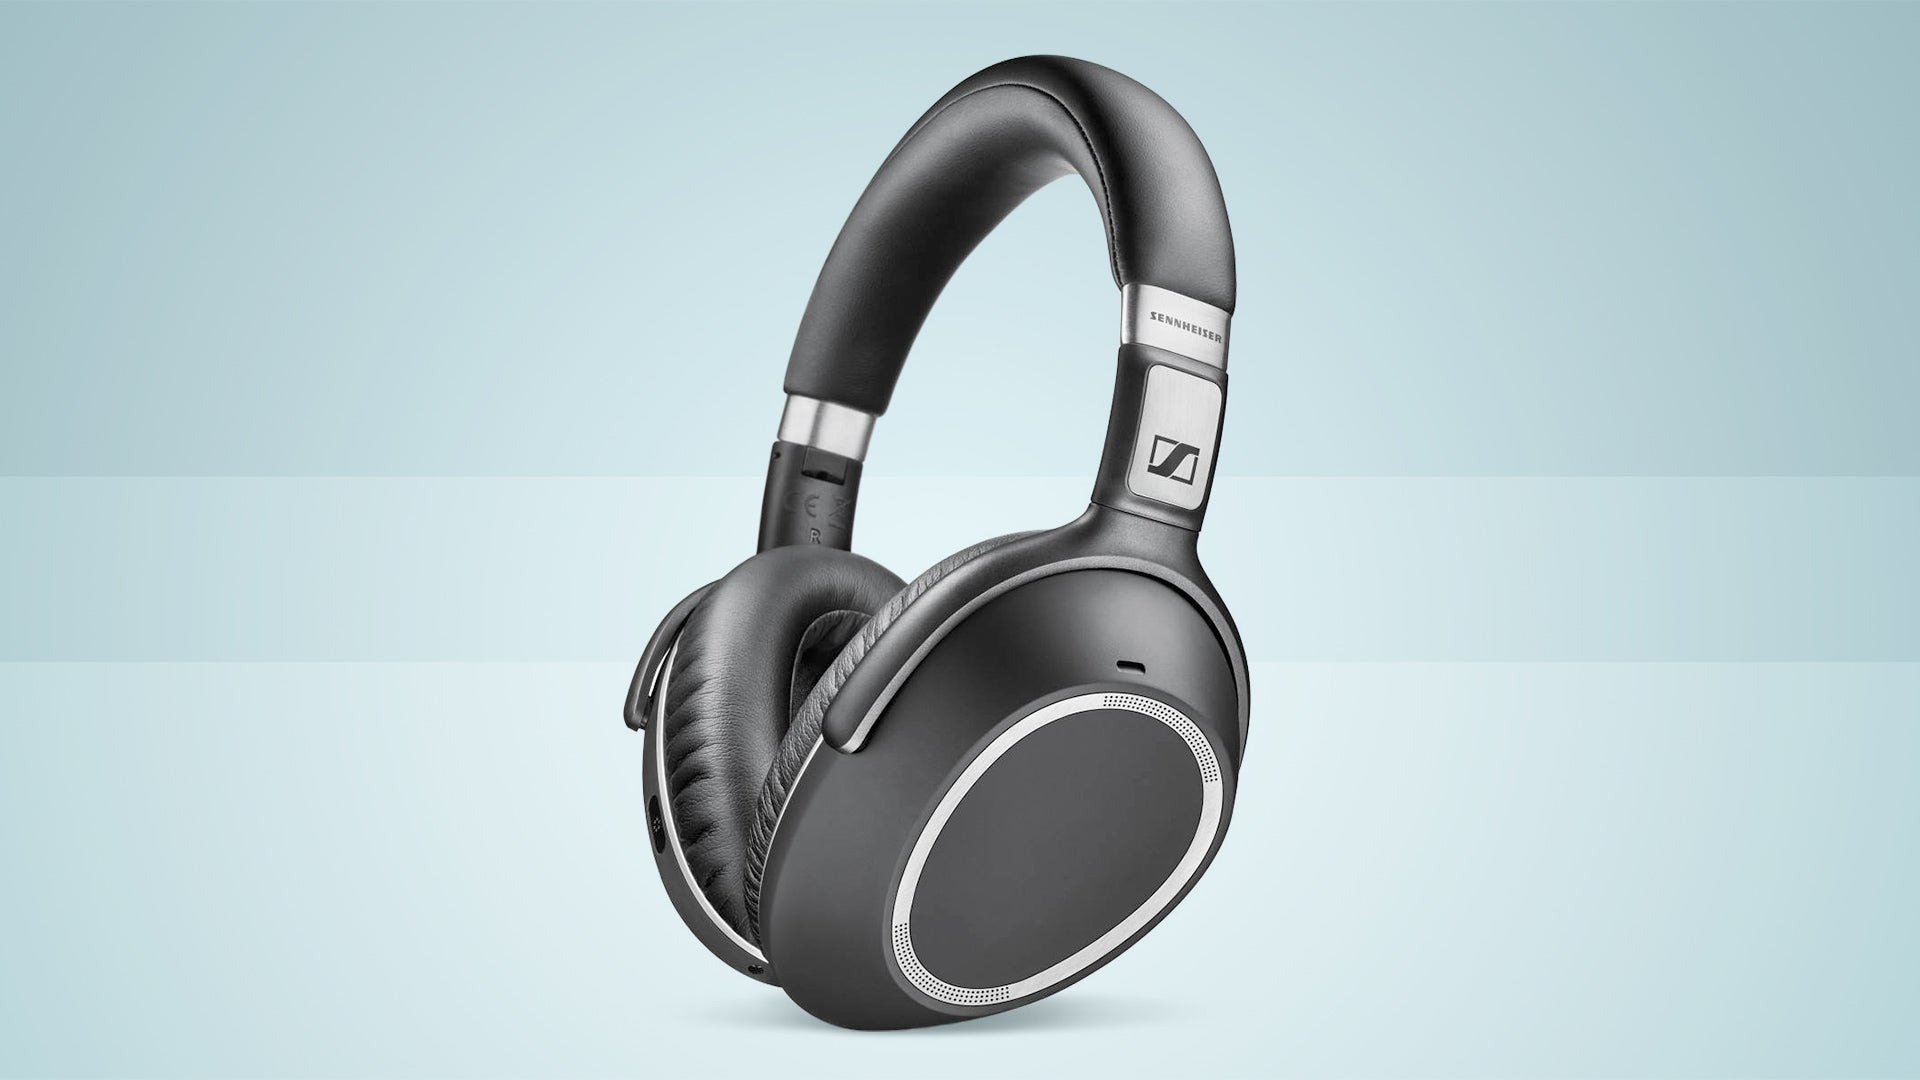 Sennheiser Pxc 550 Review Trusted Reviews Momentum 2i Black